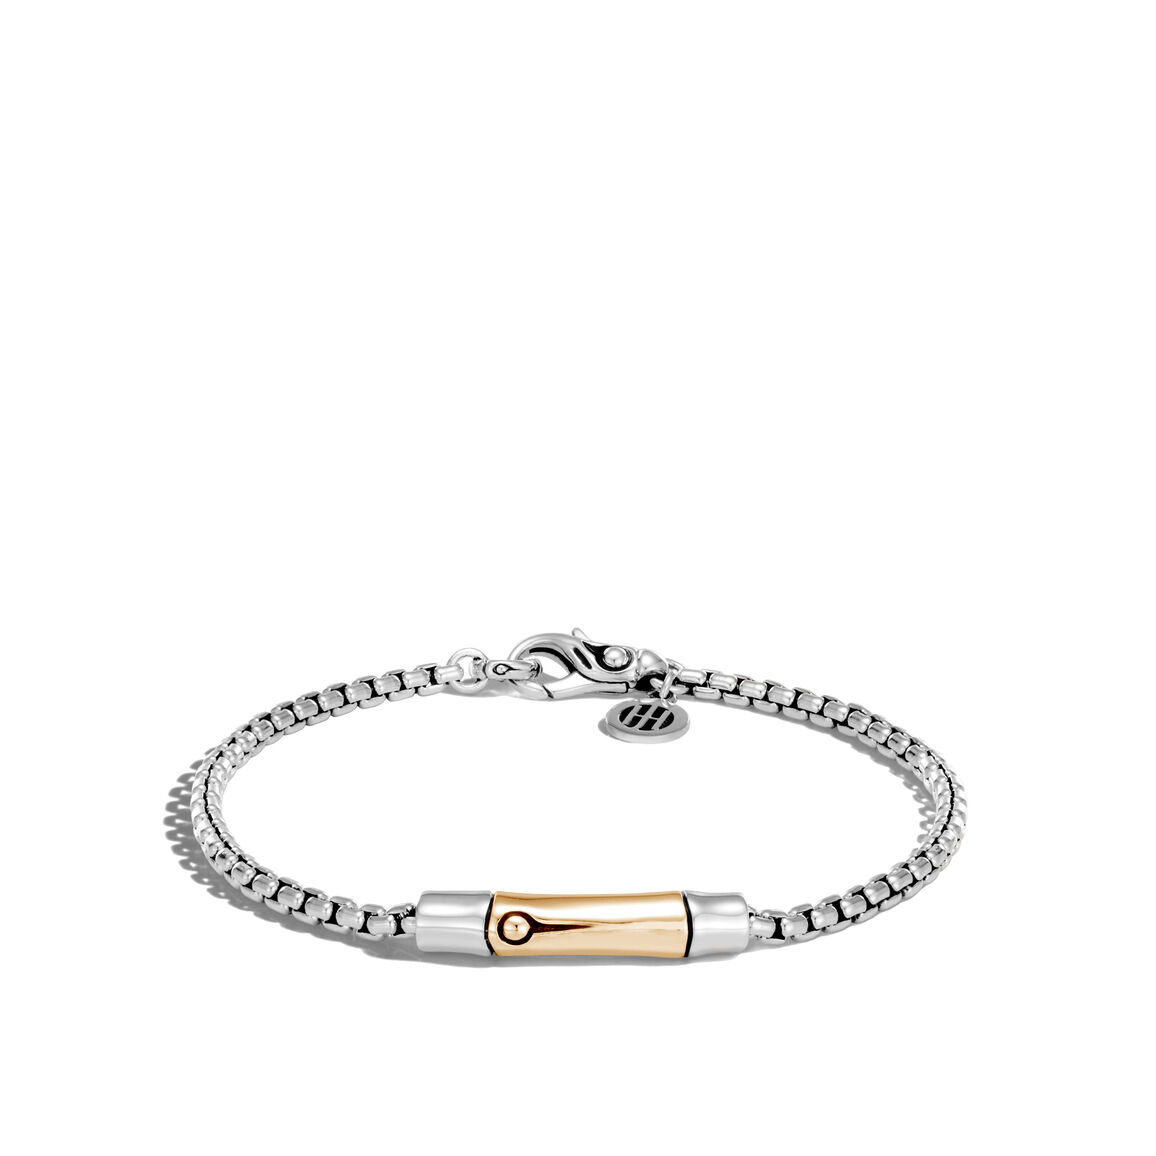 Bamboo 2.7MM Station Bracelet in Silver and 18K Gold